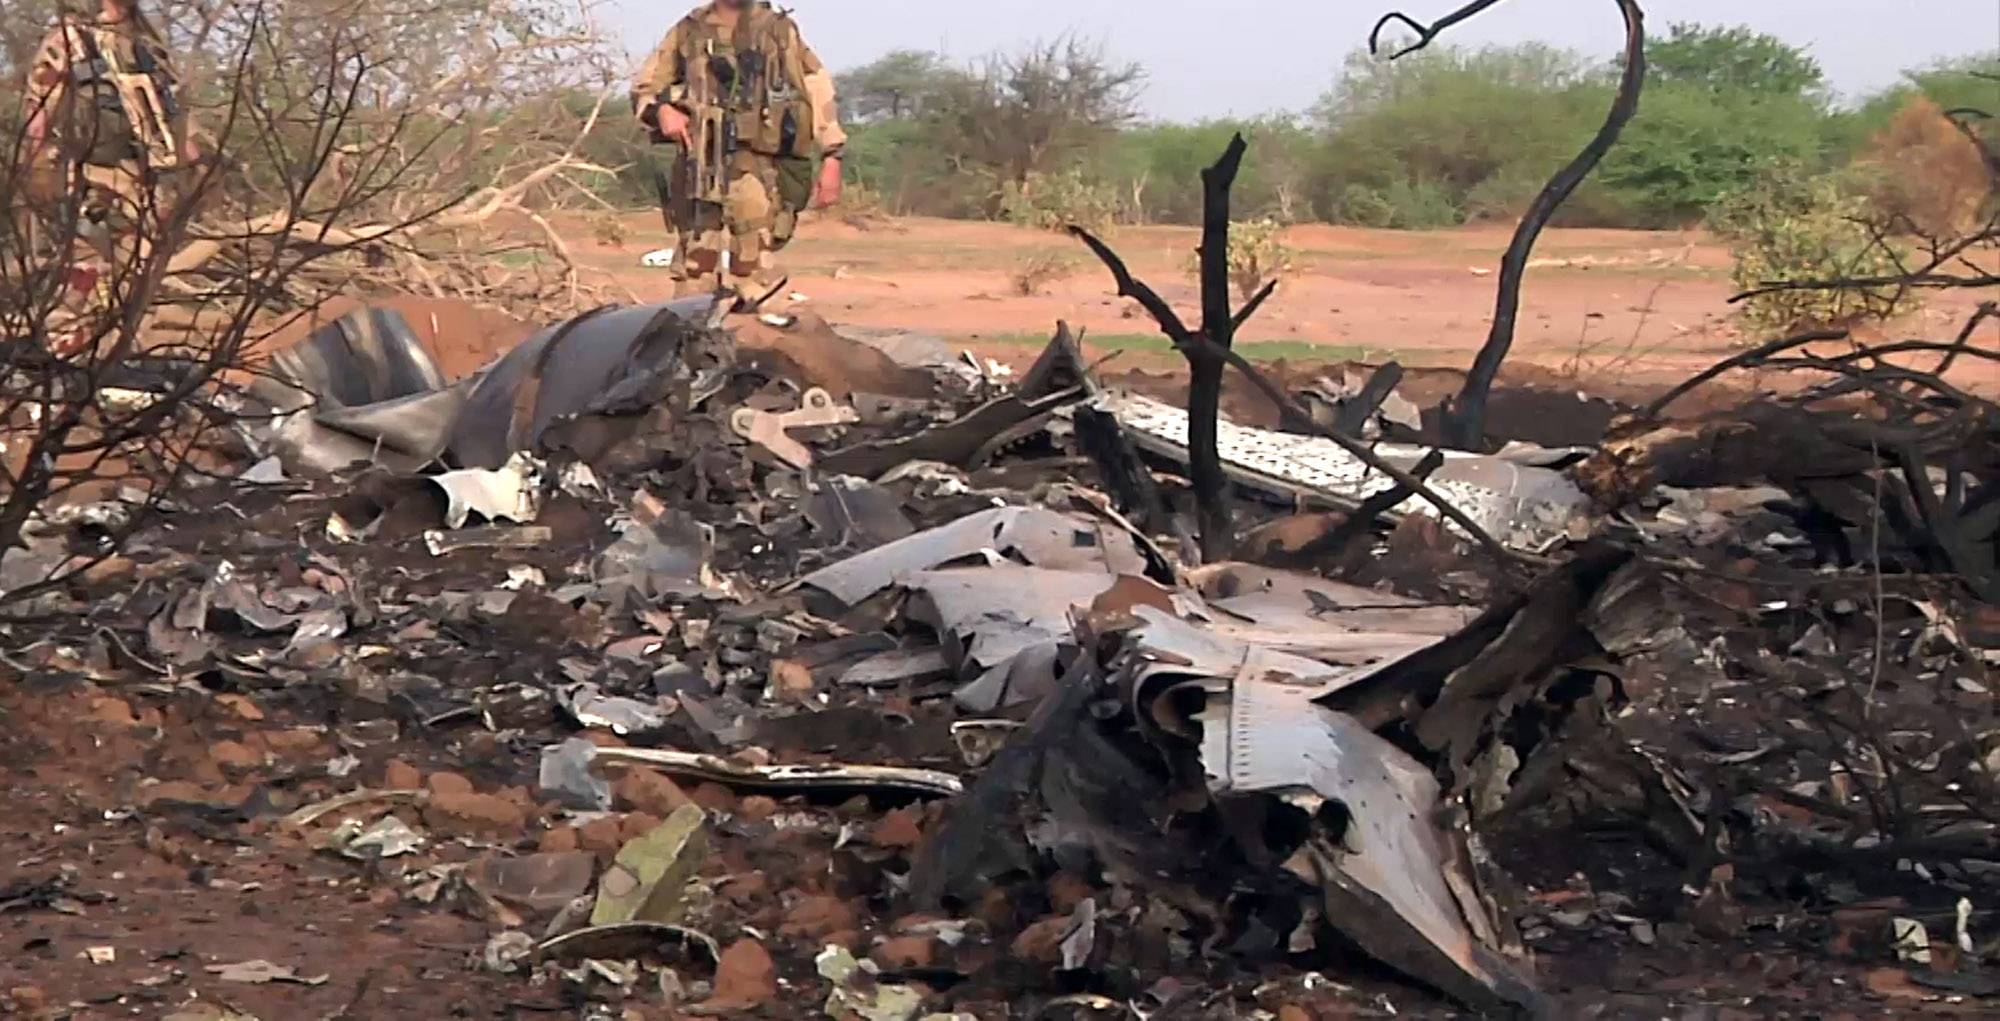 French soldiers secured a black box from the Air Algerie wreckage site in a desolate region of restive northern Mali on Friday, the French president said. Terrorism hasn't been ruled out as a cause, although officials say the most likely reason for the catastrophe that killed all onboard is bad weather. At least 116 people were killed in Thursday's disaster, nearly half of whom were French.